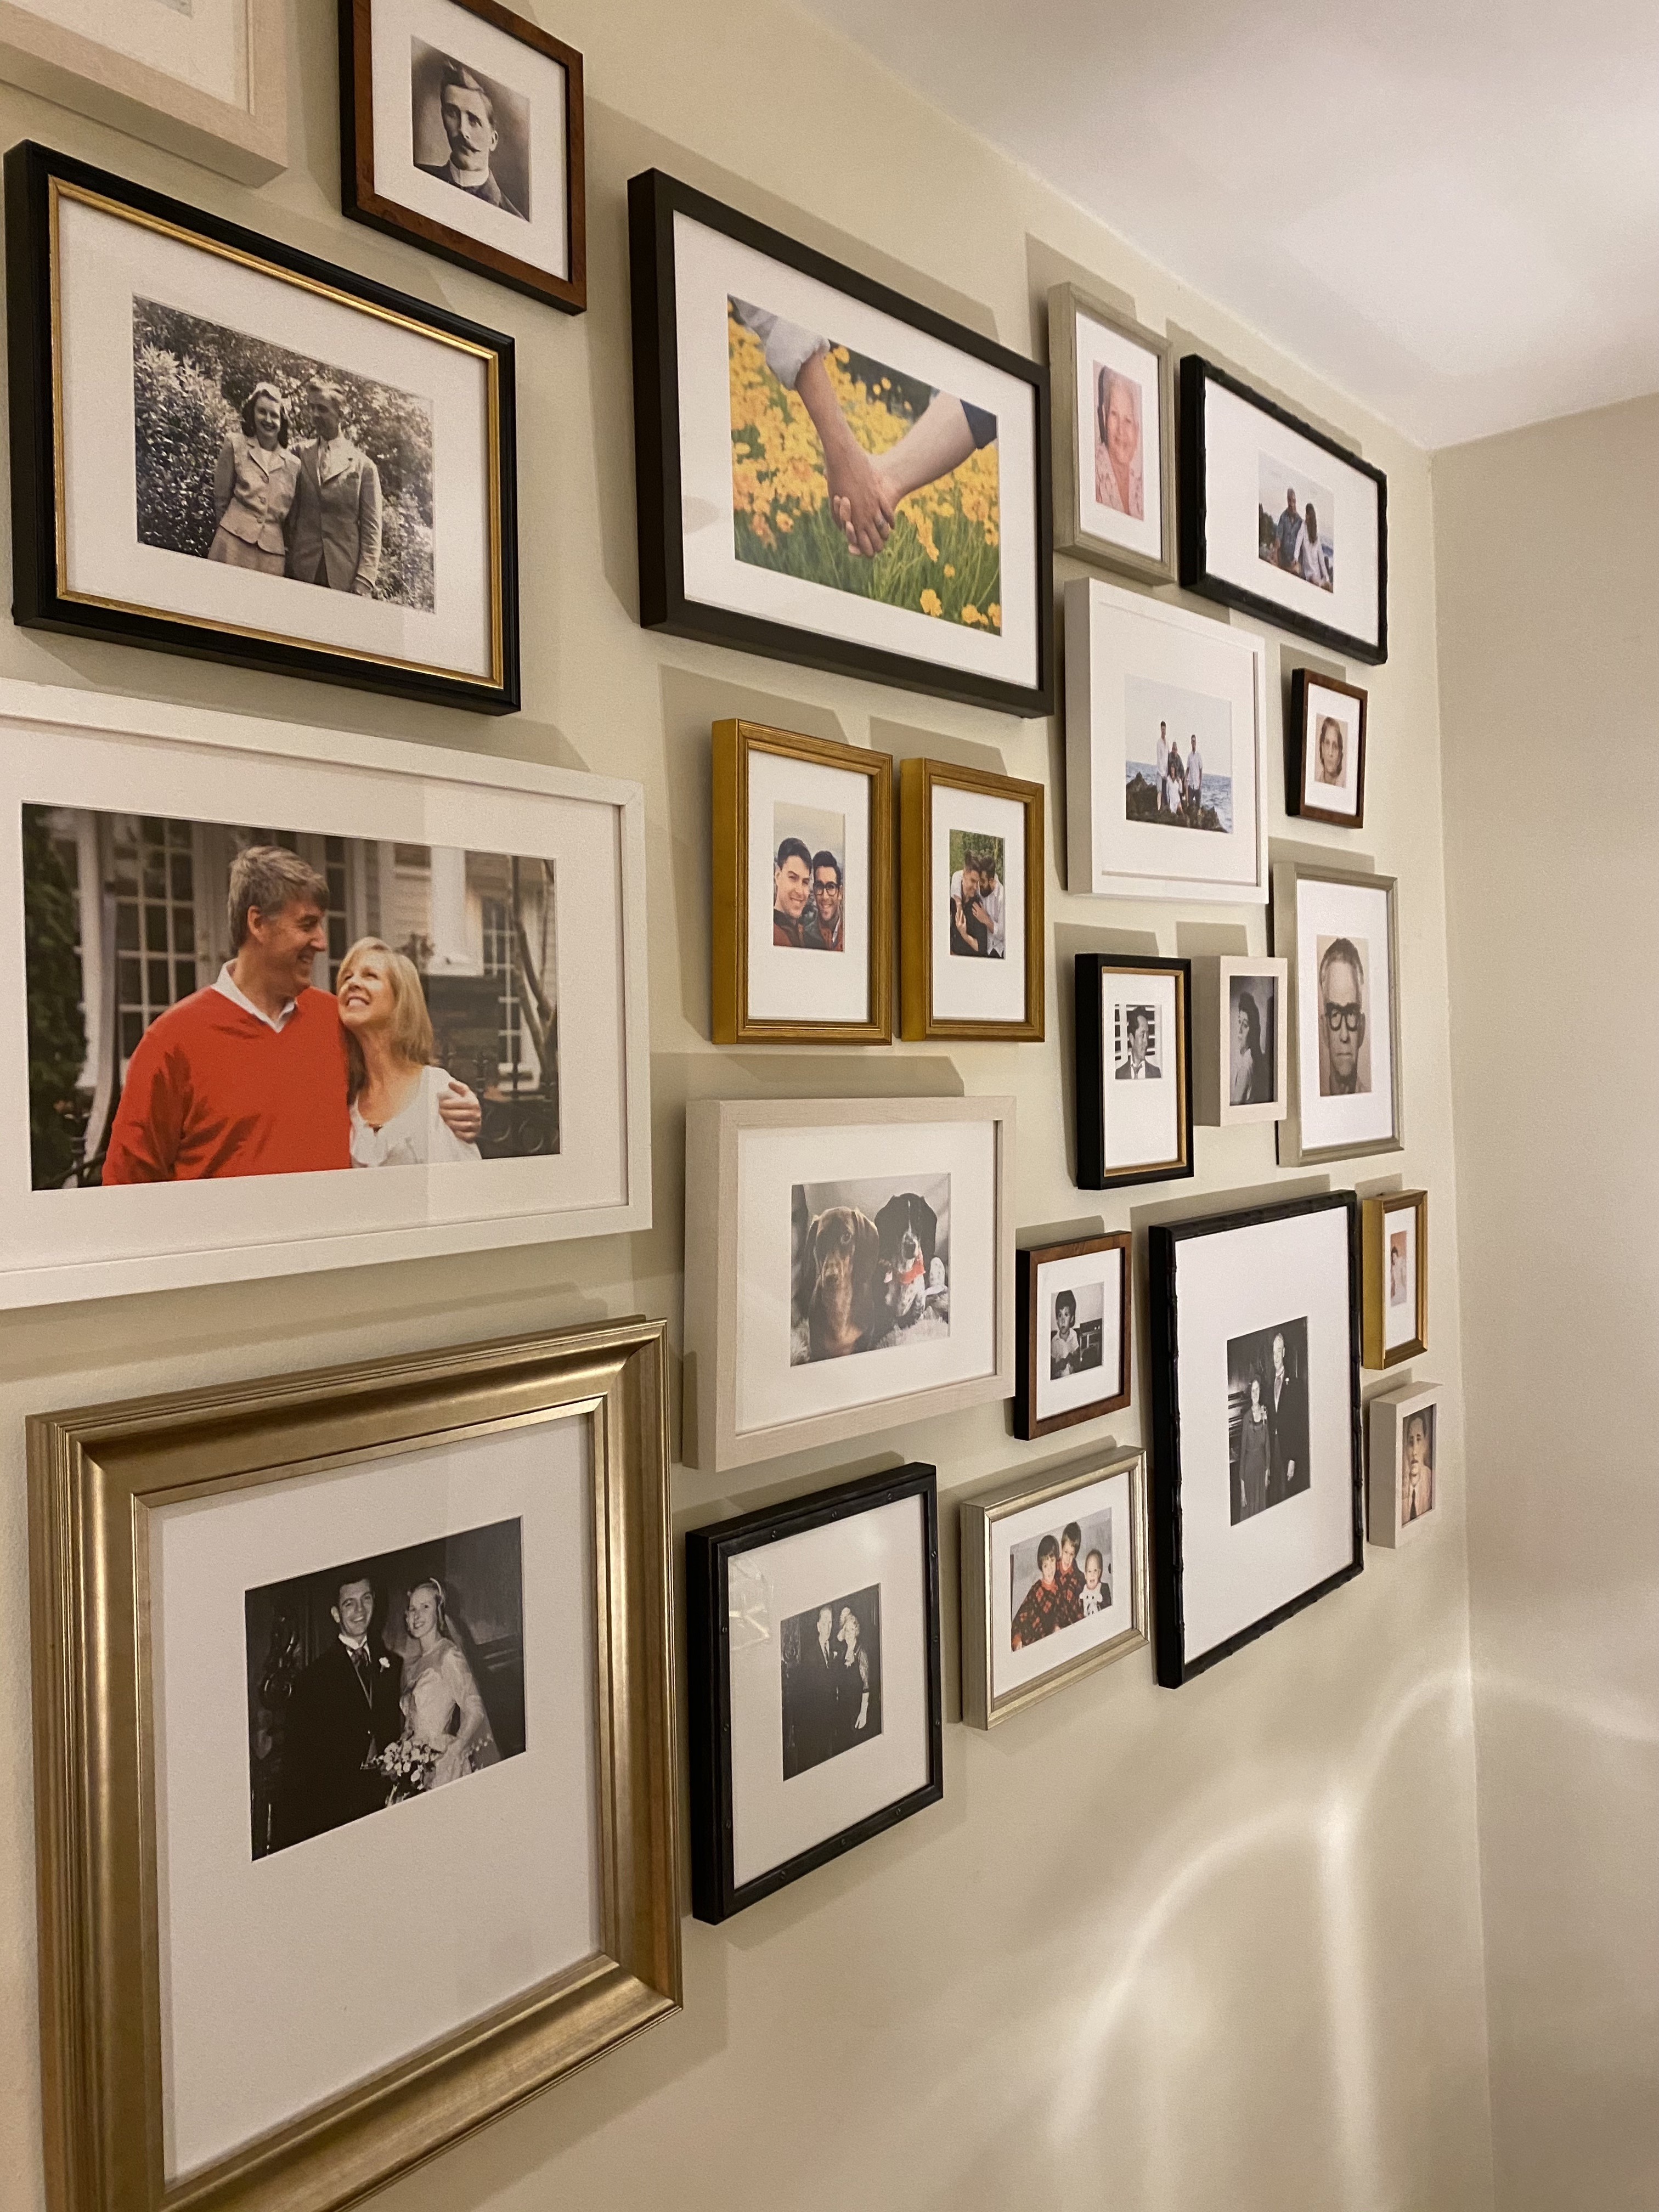 Endless organic gallery wall with family pictures